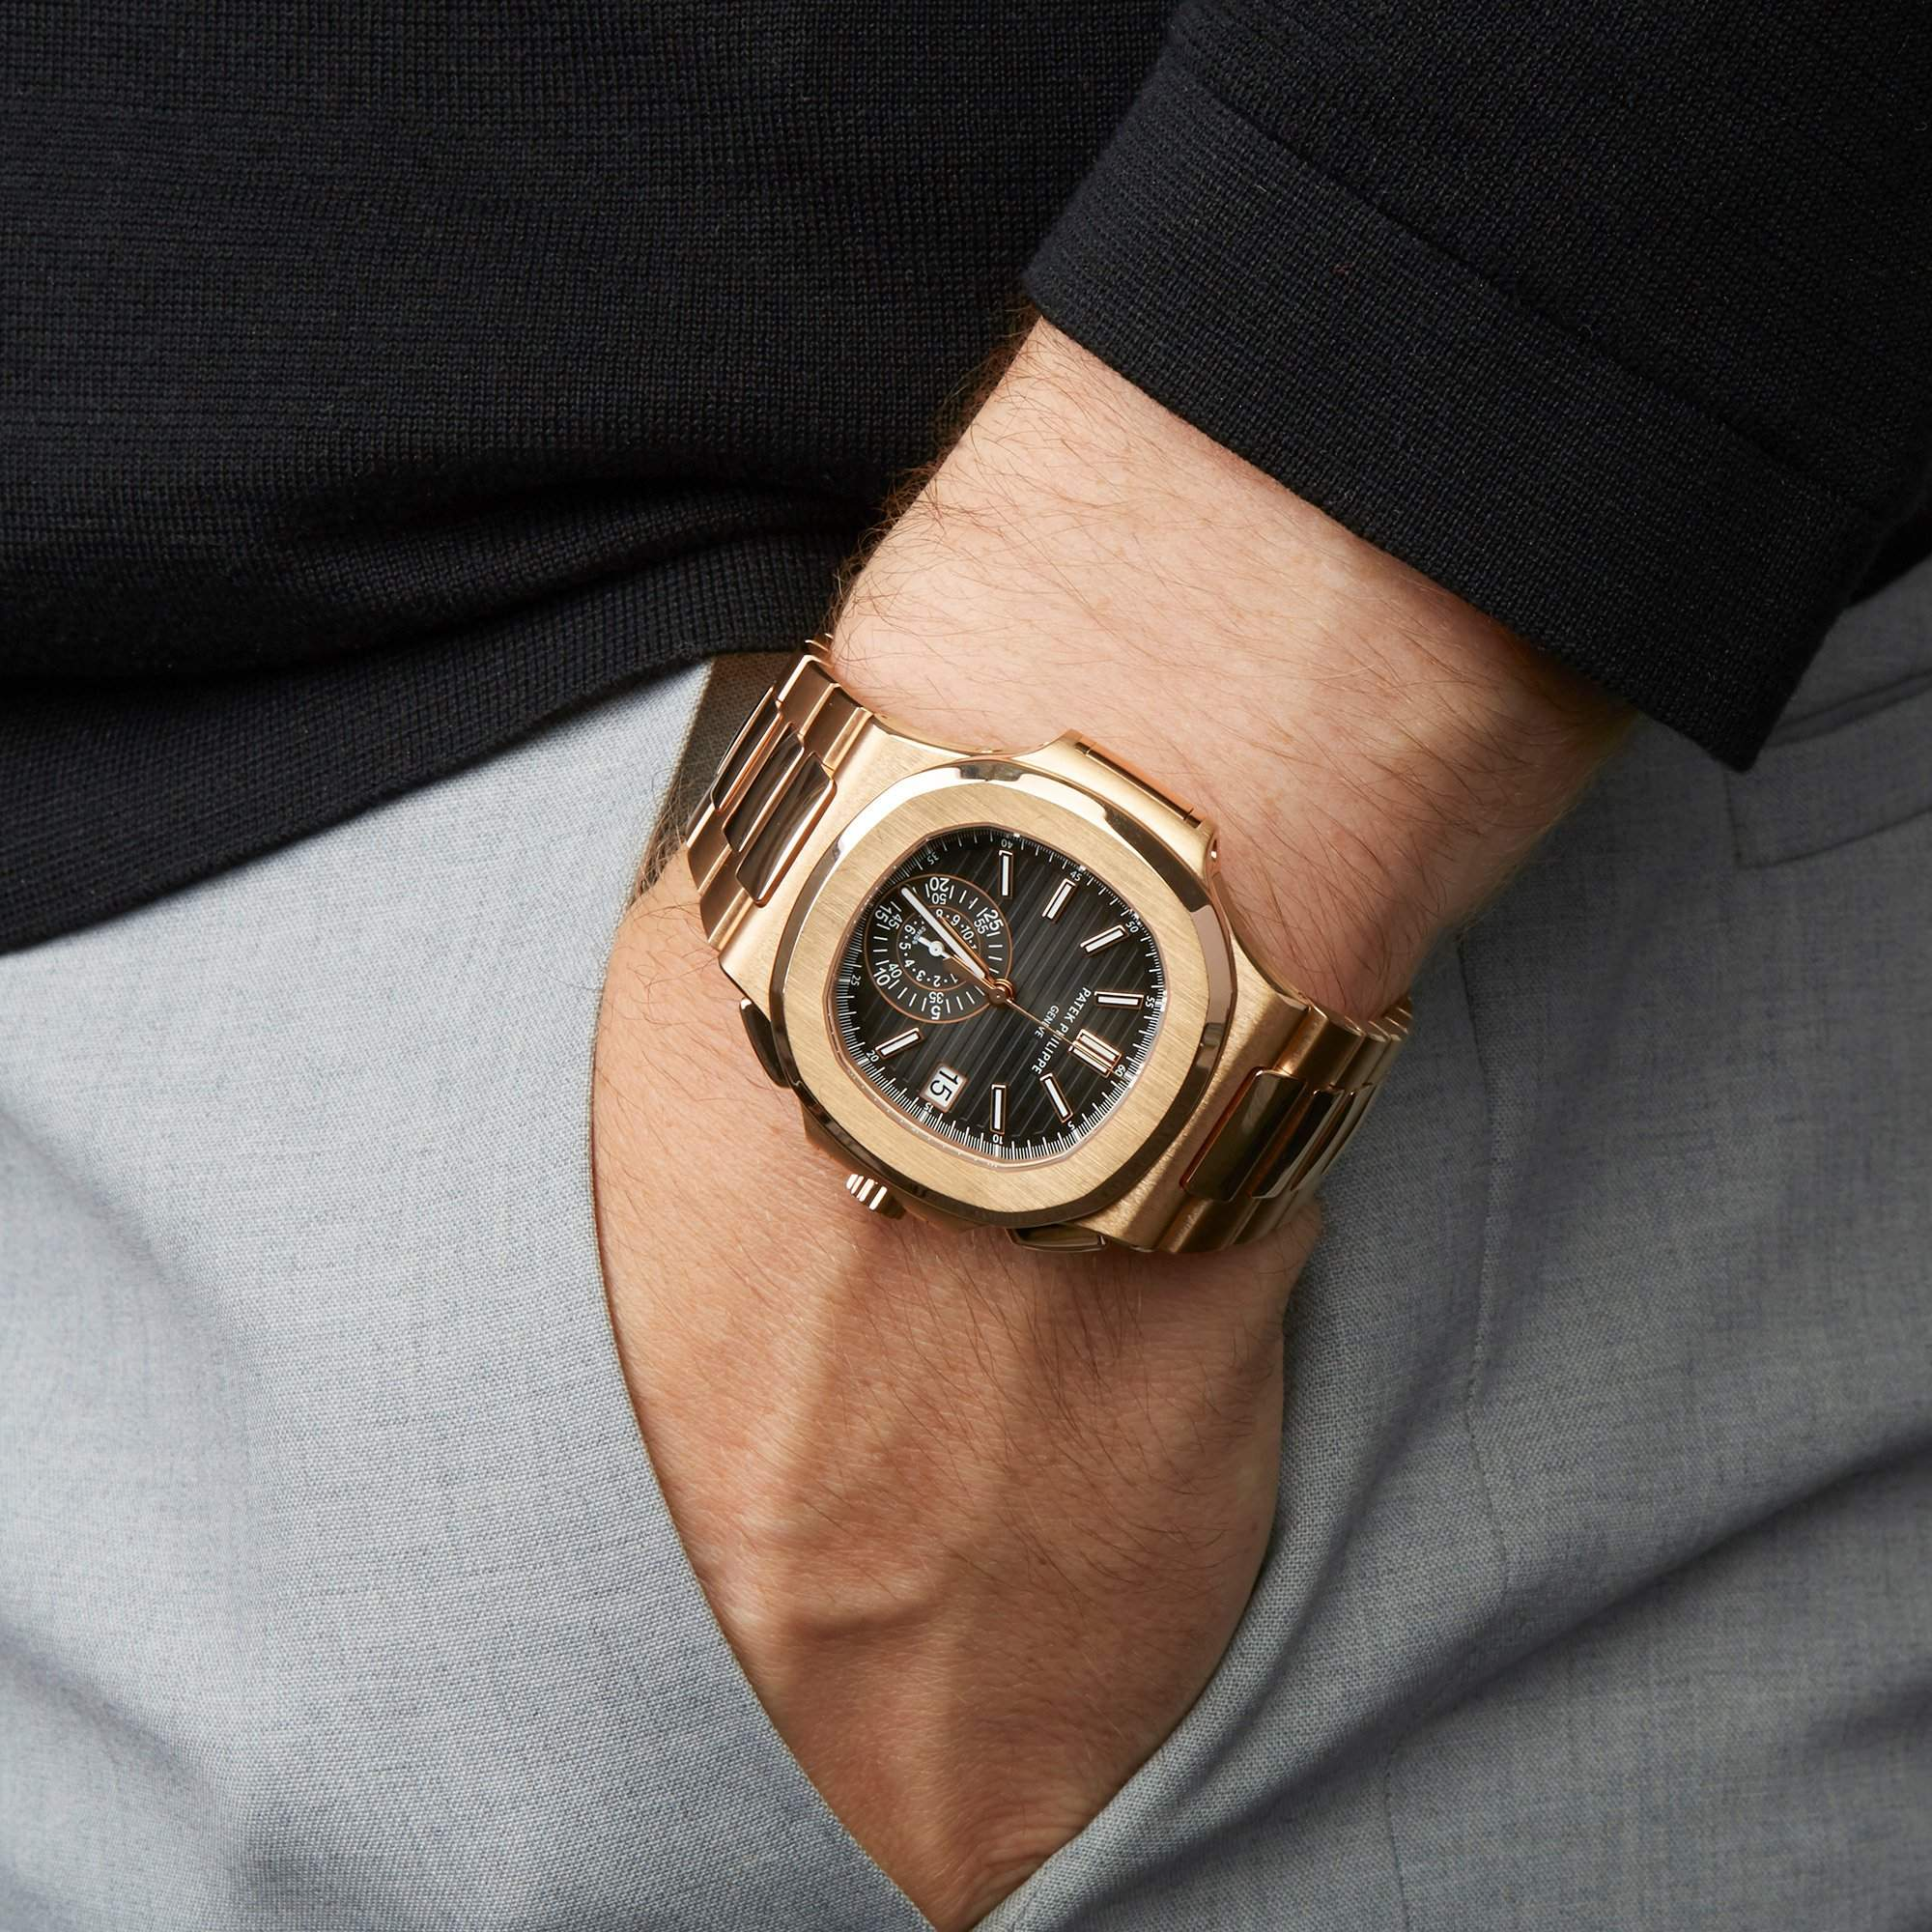 The Nautilus by Patek Philippe: A dream watch for enthusiasts